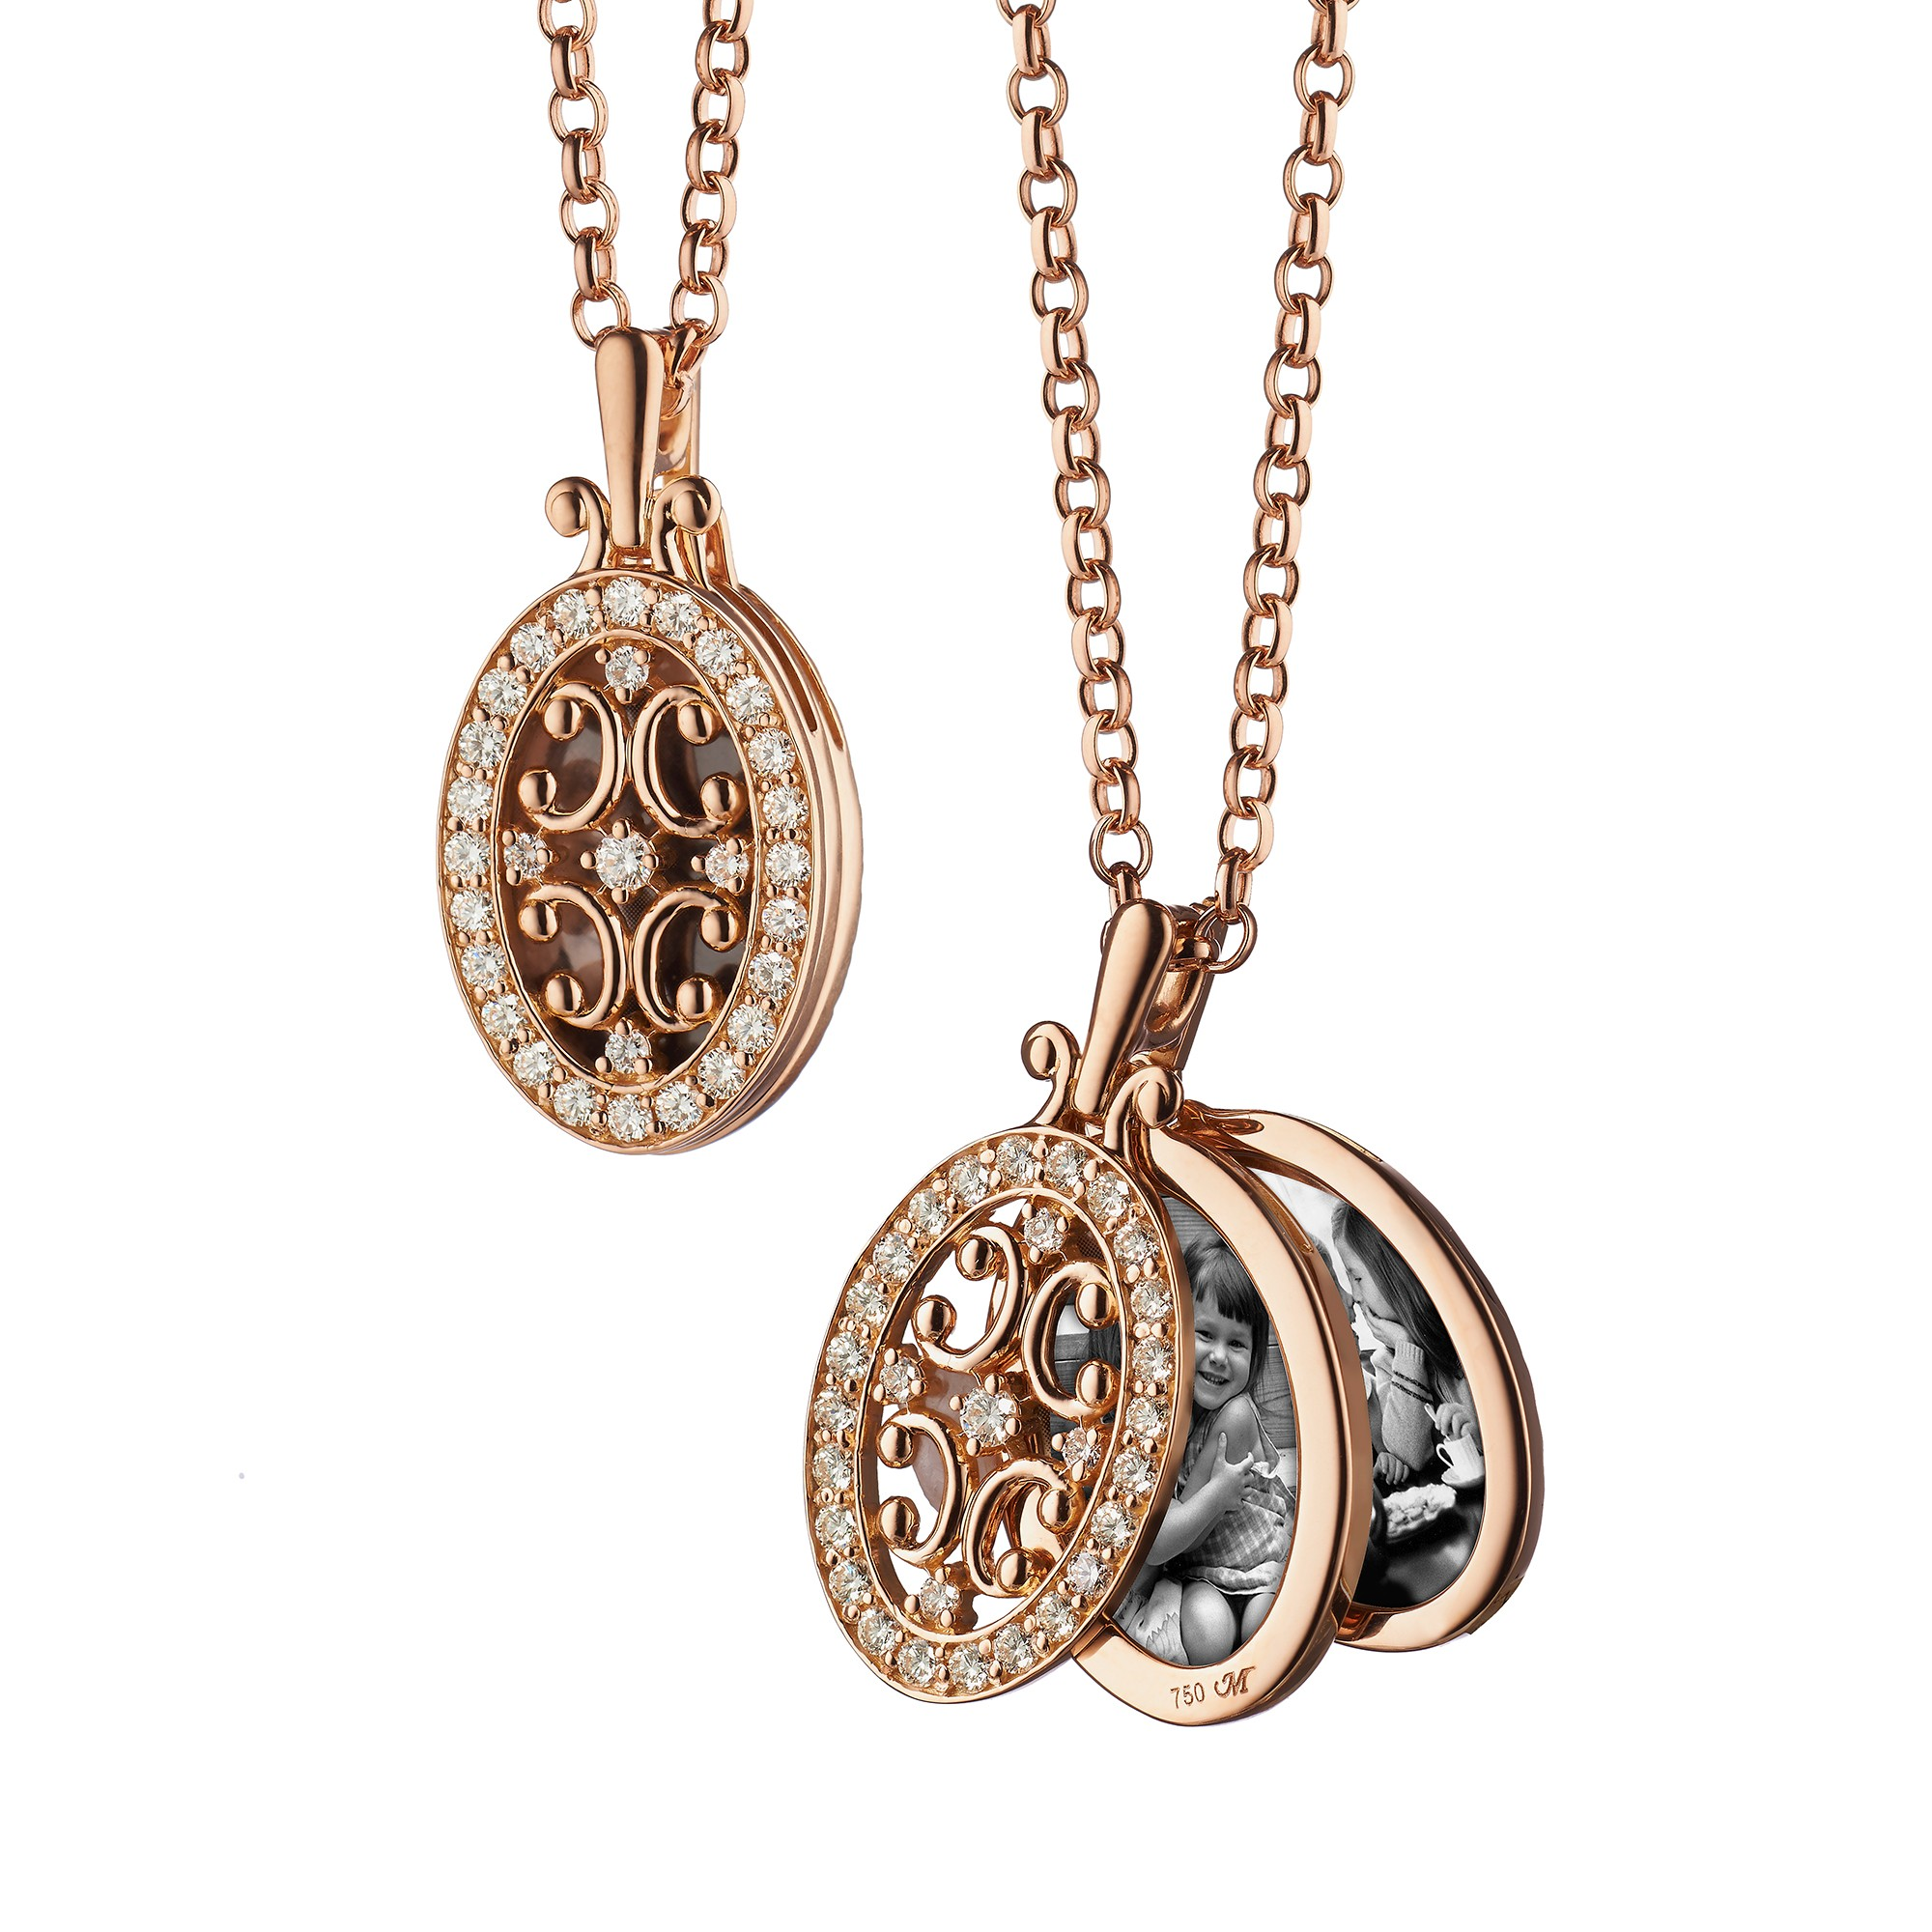 d number lockets heart champagne webstore crystal h samuel gold rose product locket